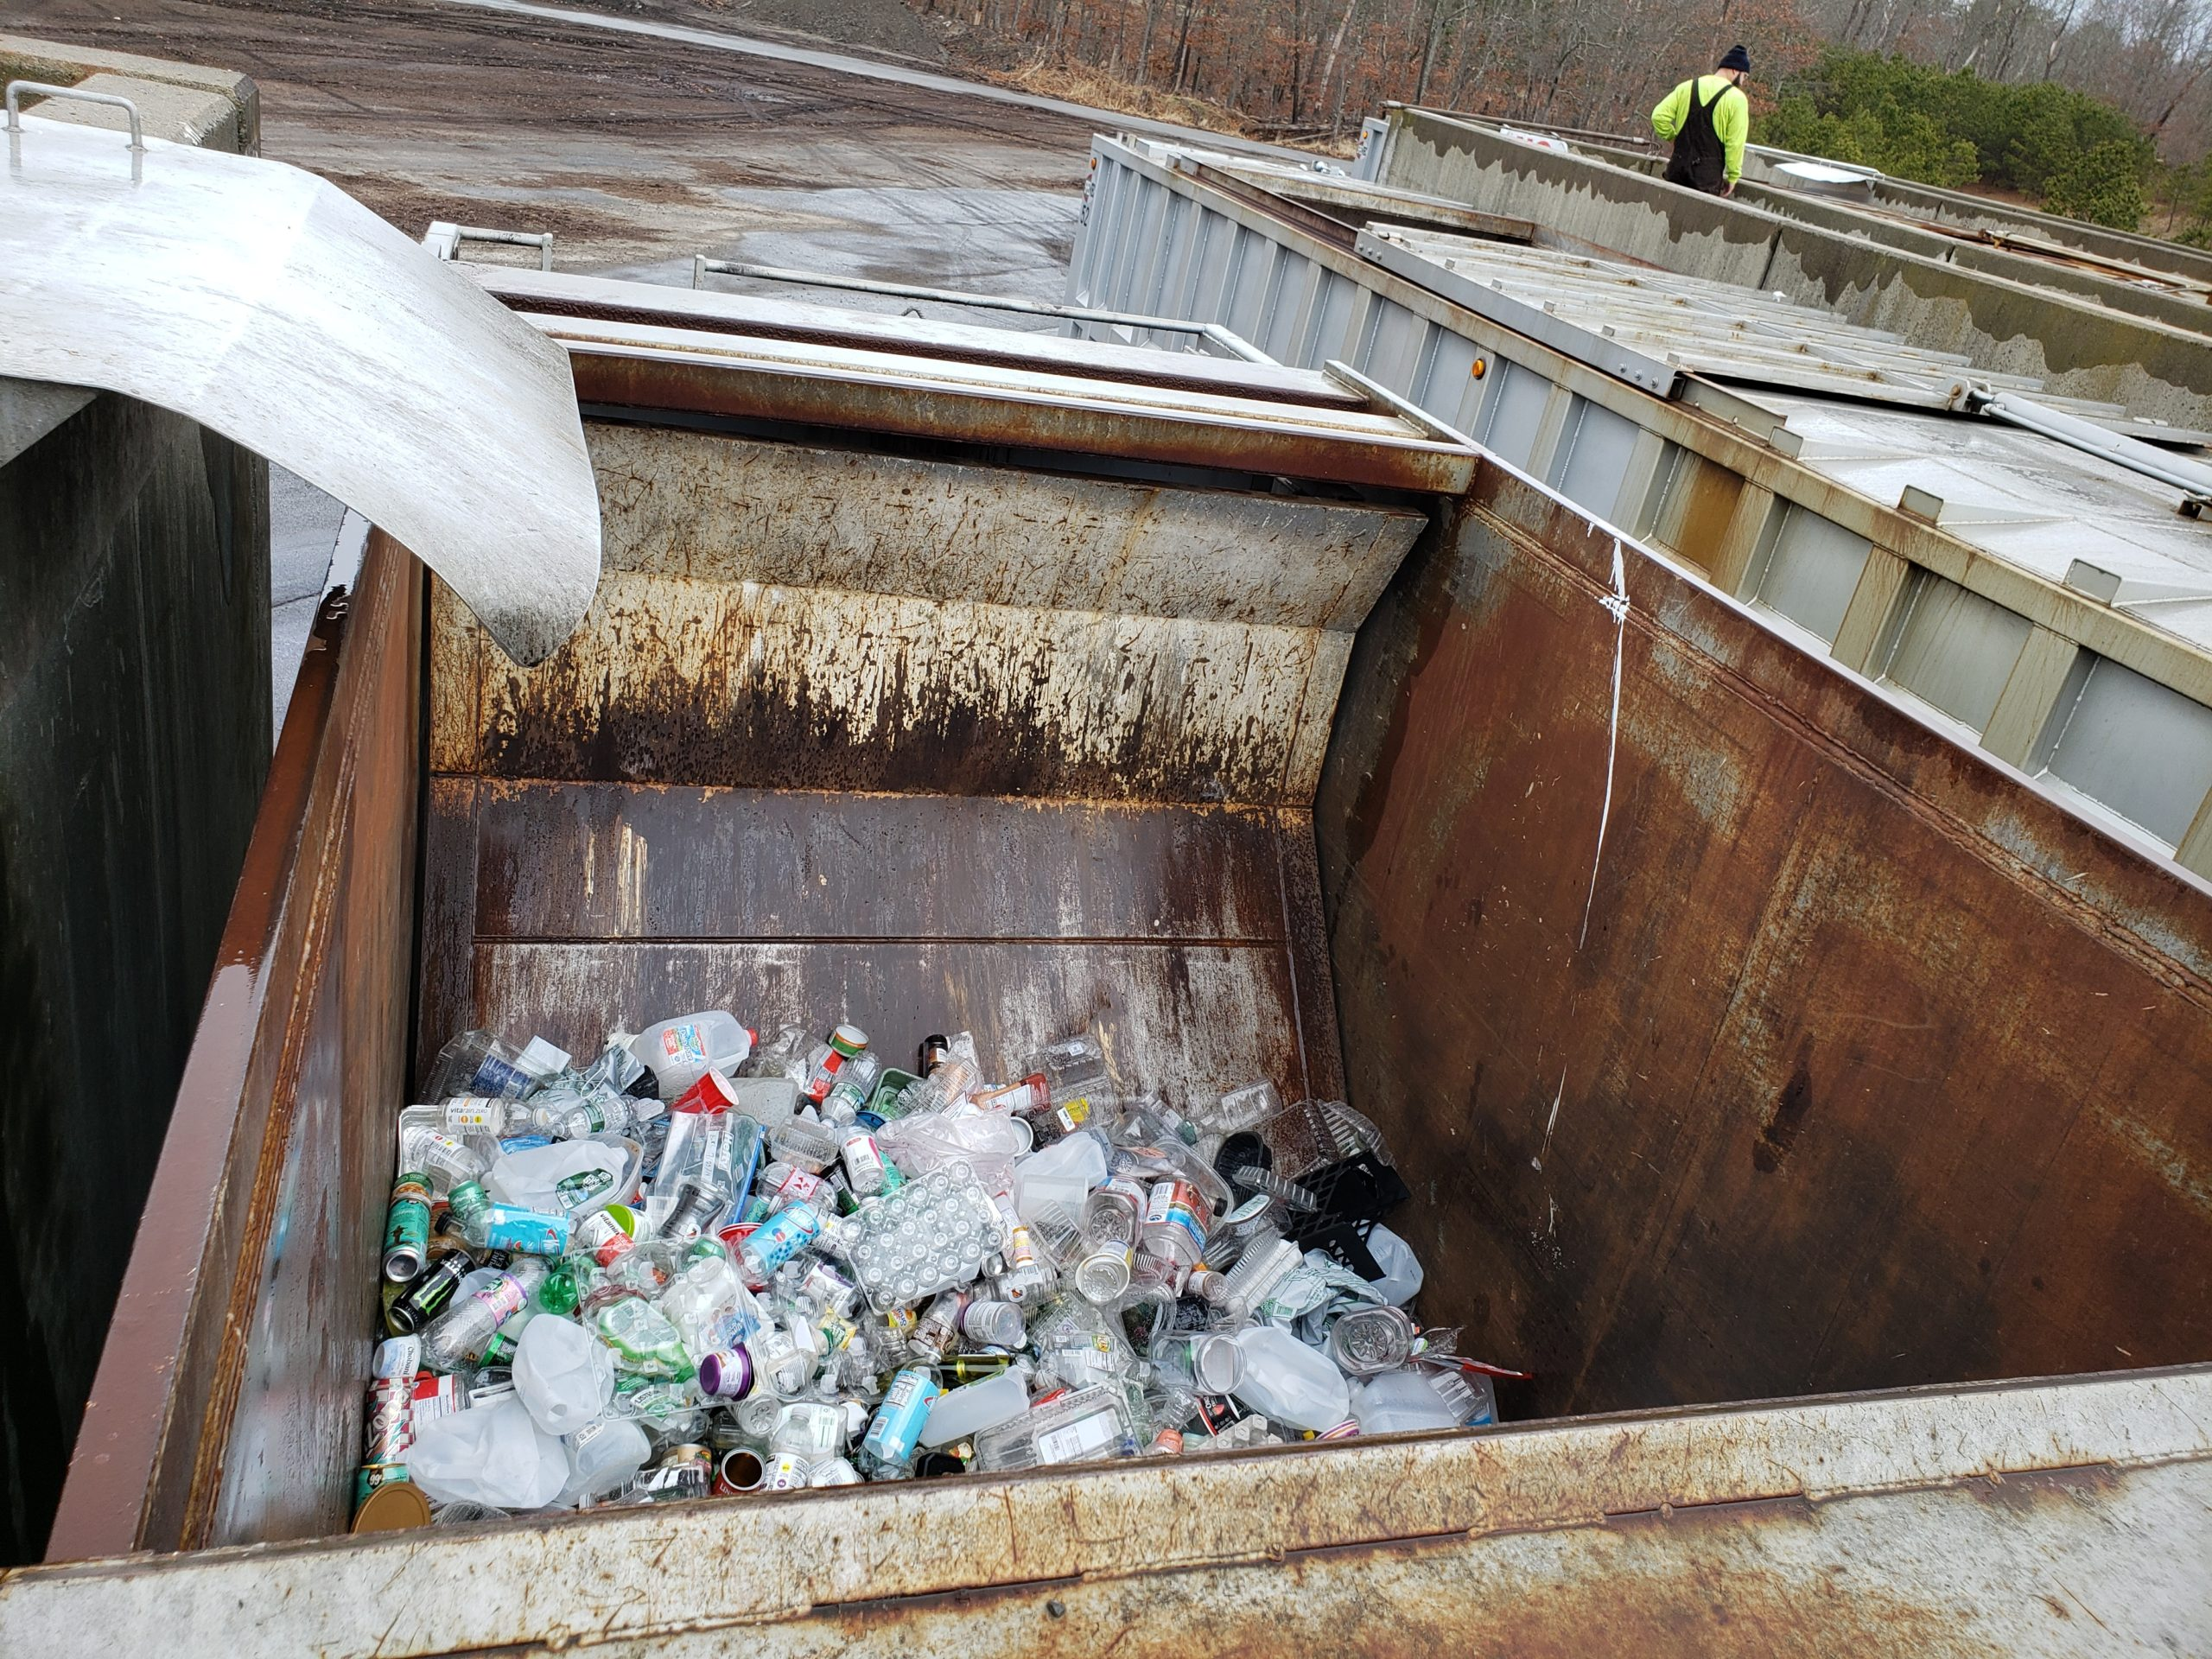 Southampton Town residents can drop off recyclable materials at any of the transfer stations in the town. GREG WEHNER